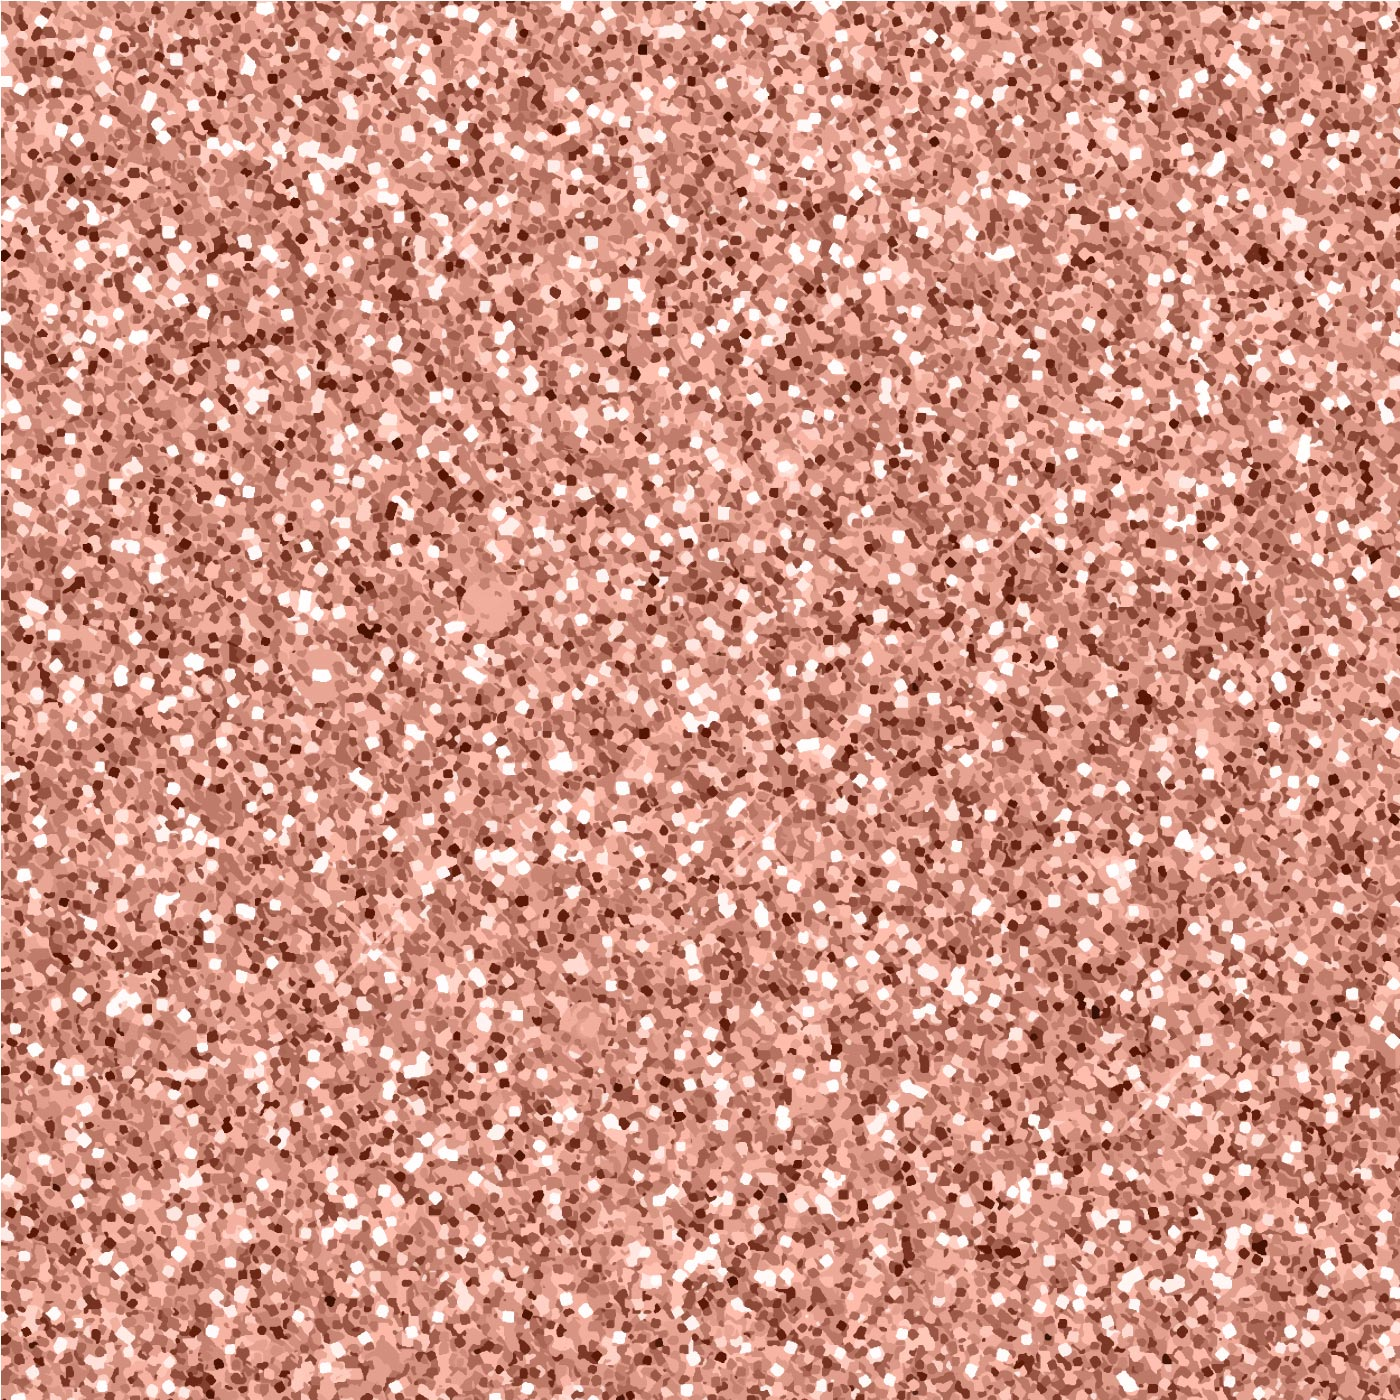 Rose Gold Glitter Background - Download Free Vector Art ...